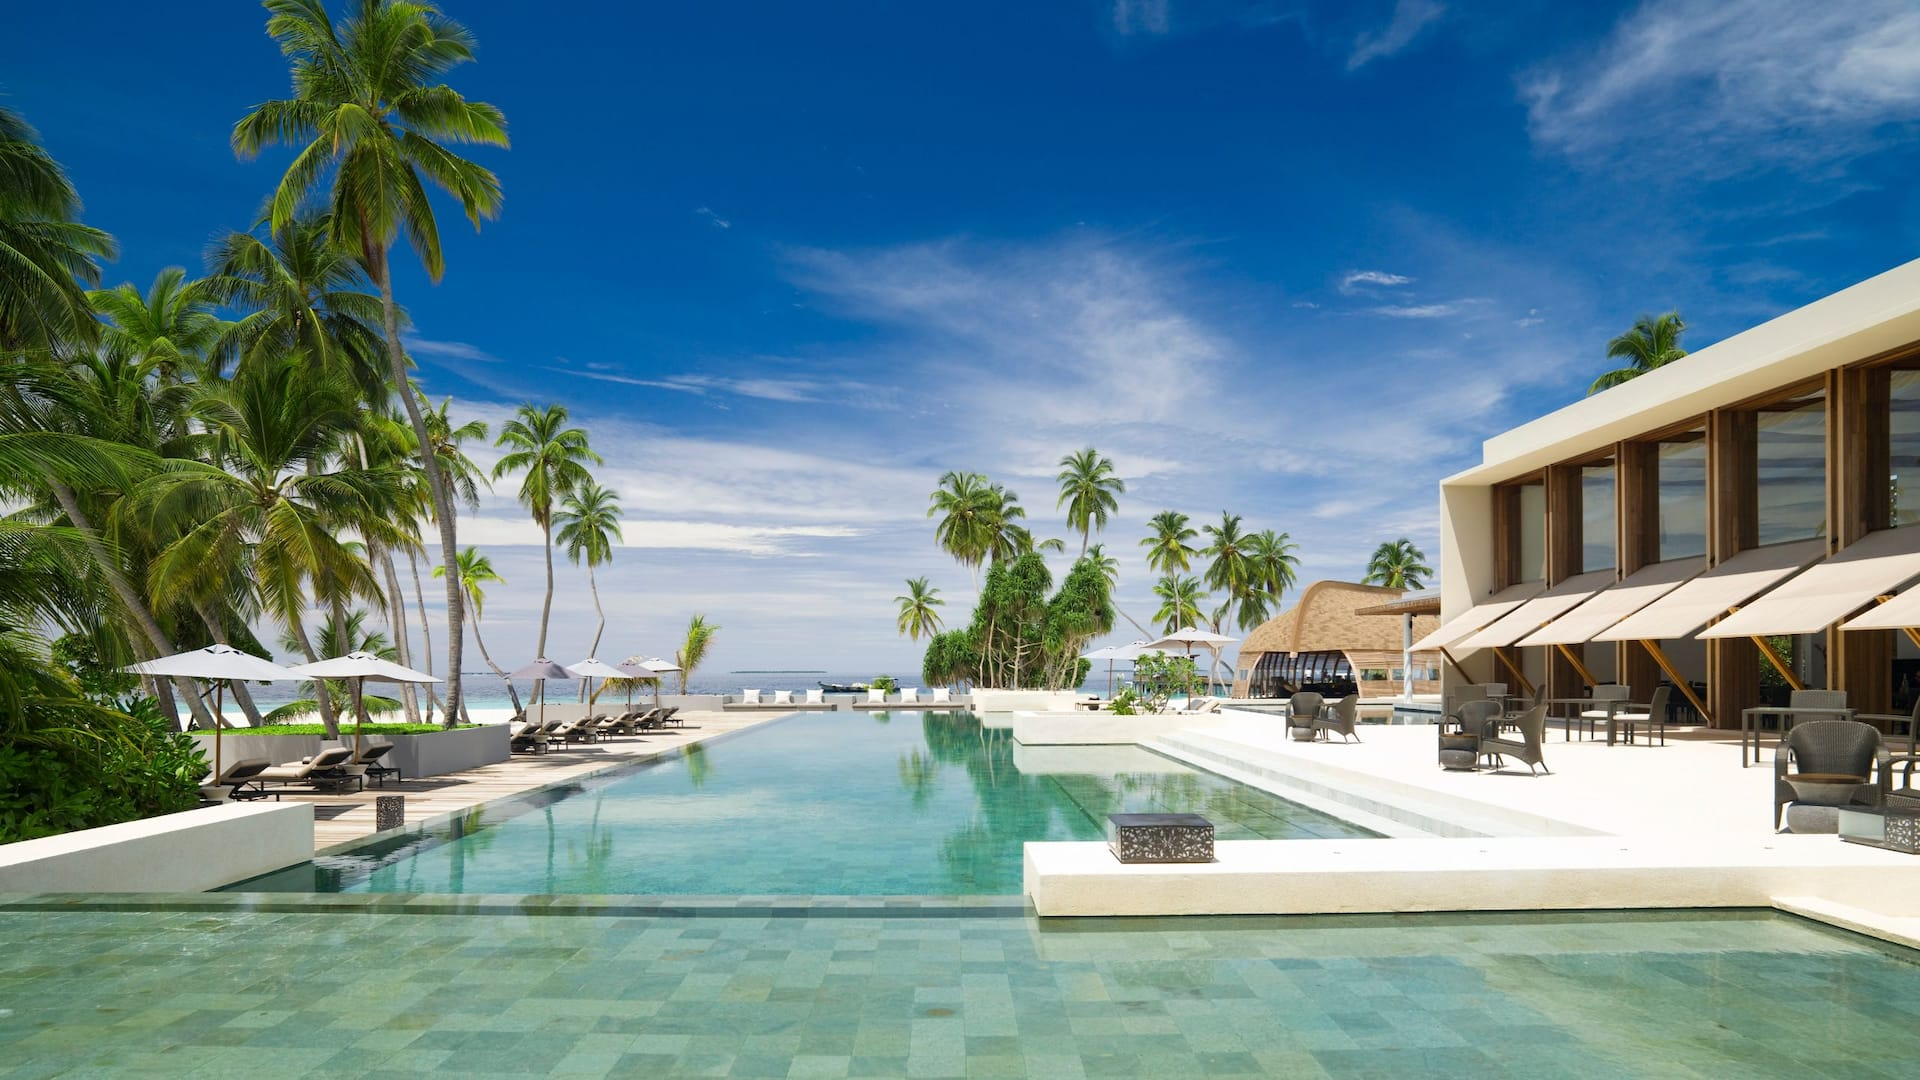 Luxury Maldives resort pool